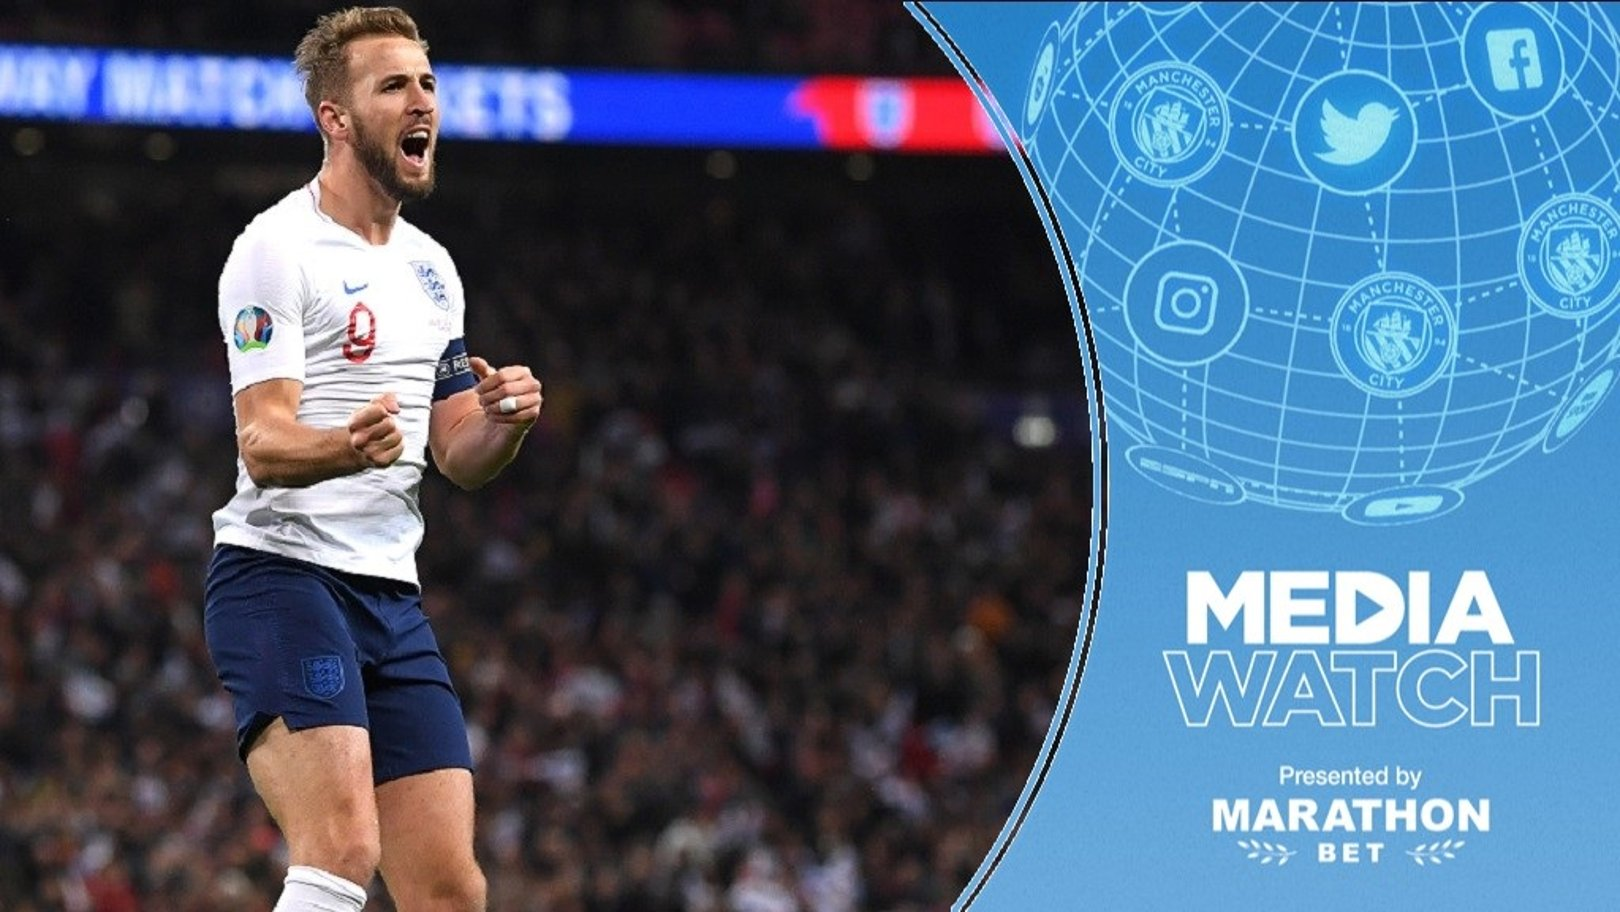 90 mins: 'City would fight Reds for Kane'